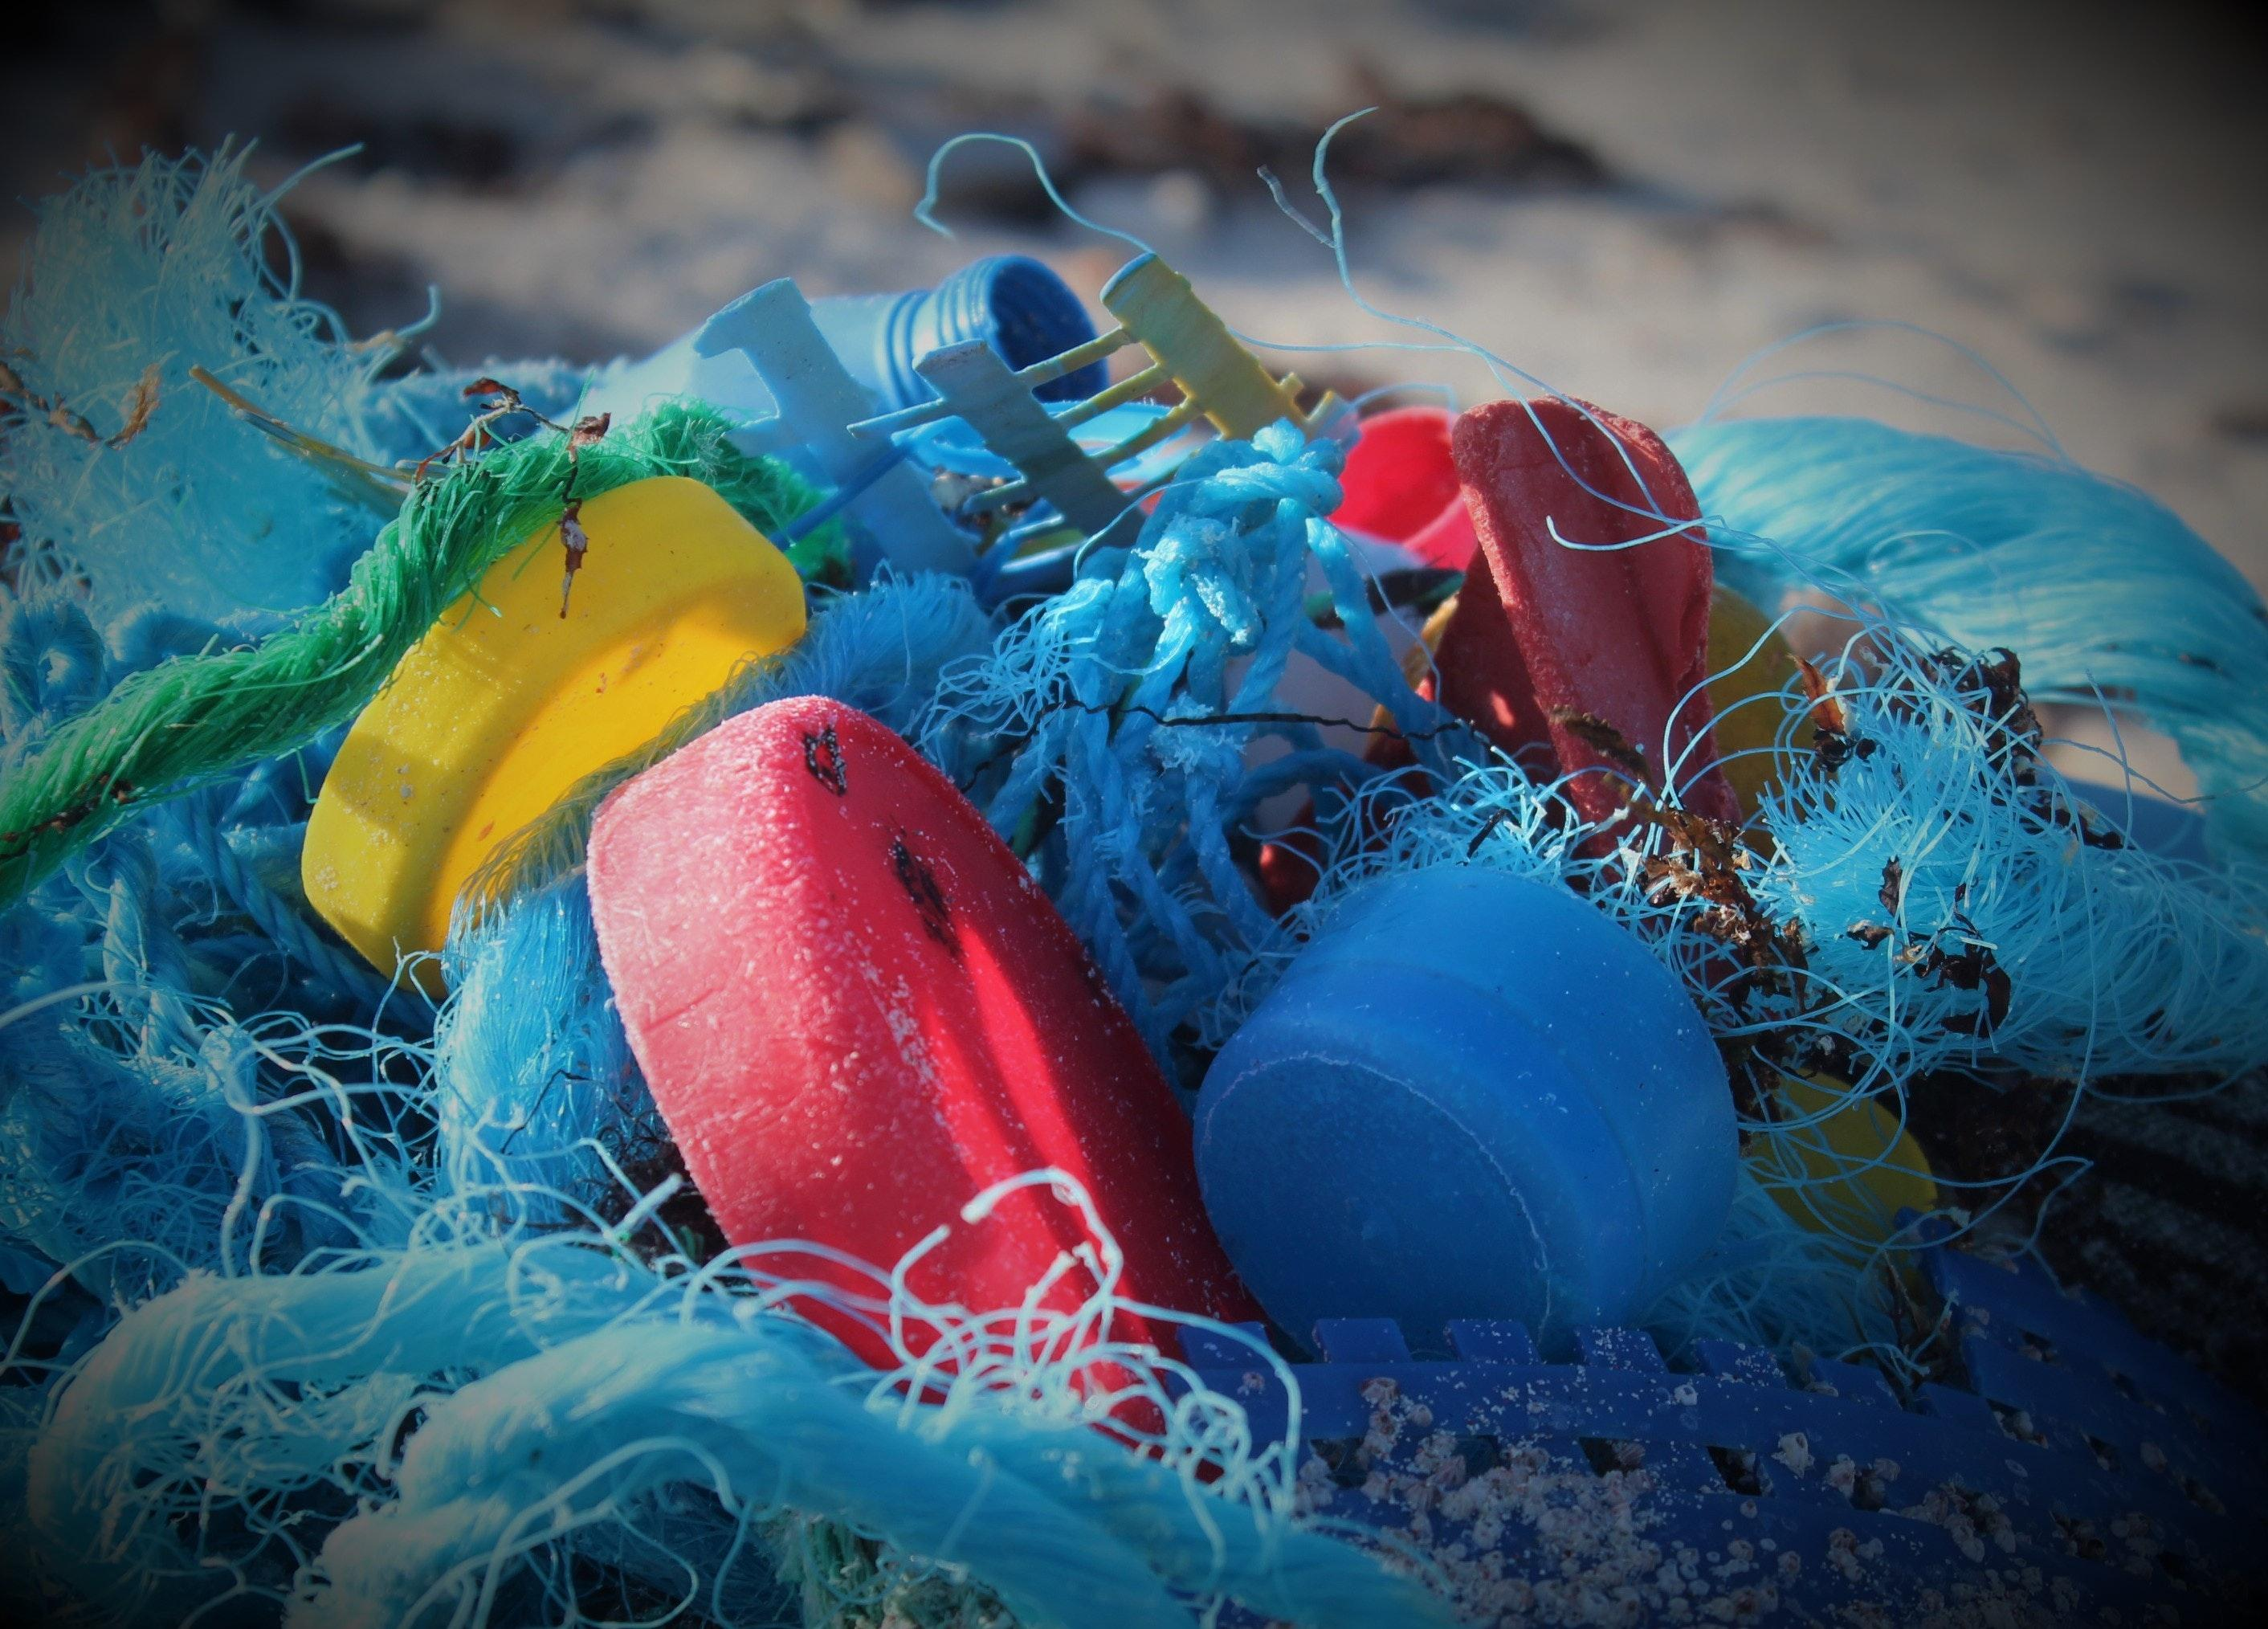 Free stock photo of plastics, pollution, pollution on the beach